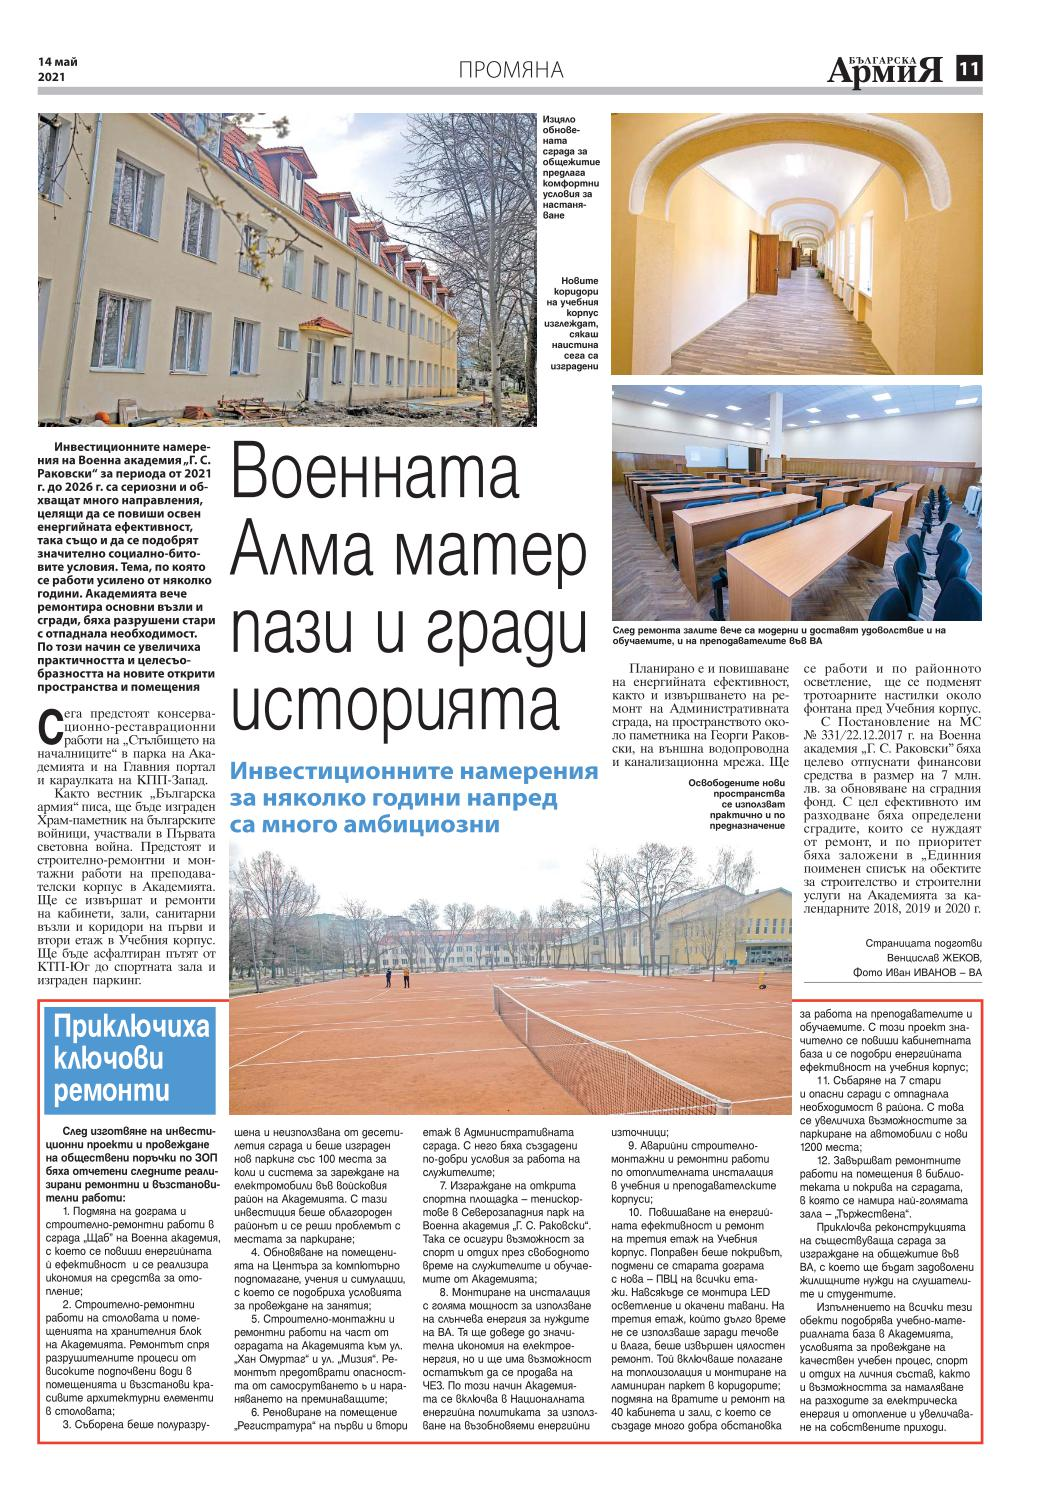 https://armymedia.bg/wp-content/uploads/2021/05/11.page1_-1.jpg